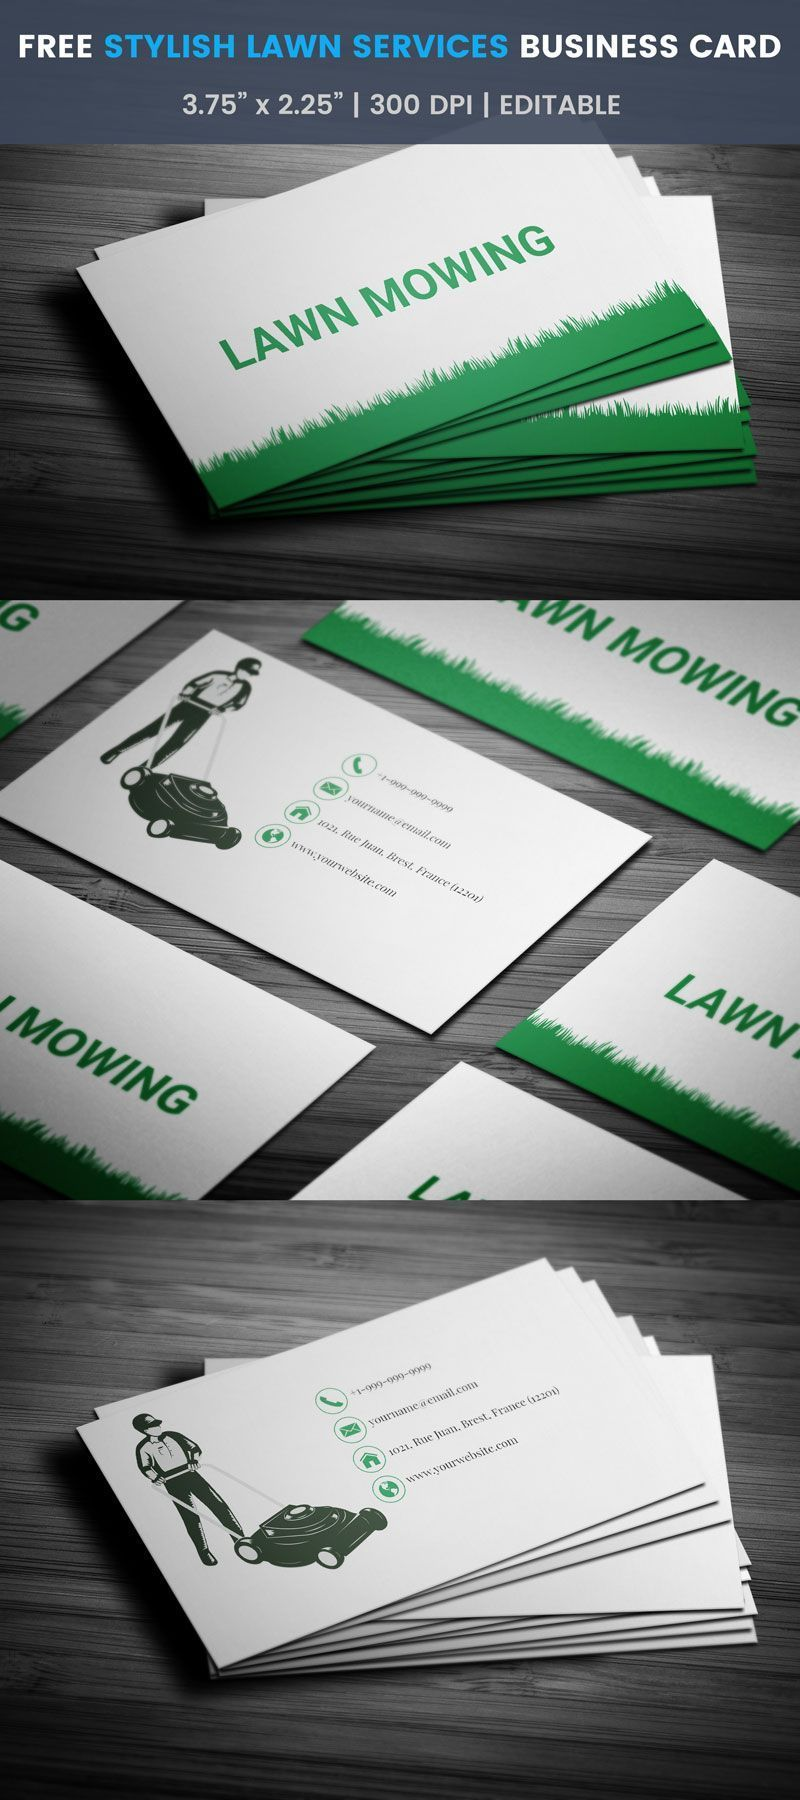 Brilliant Lawn Mowing Business Card Full Preview Lawn